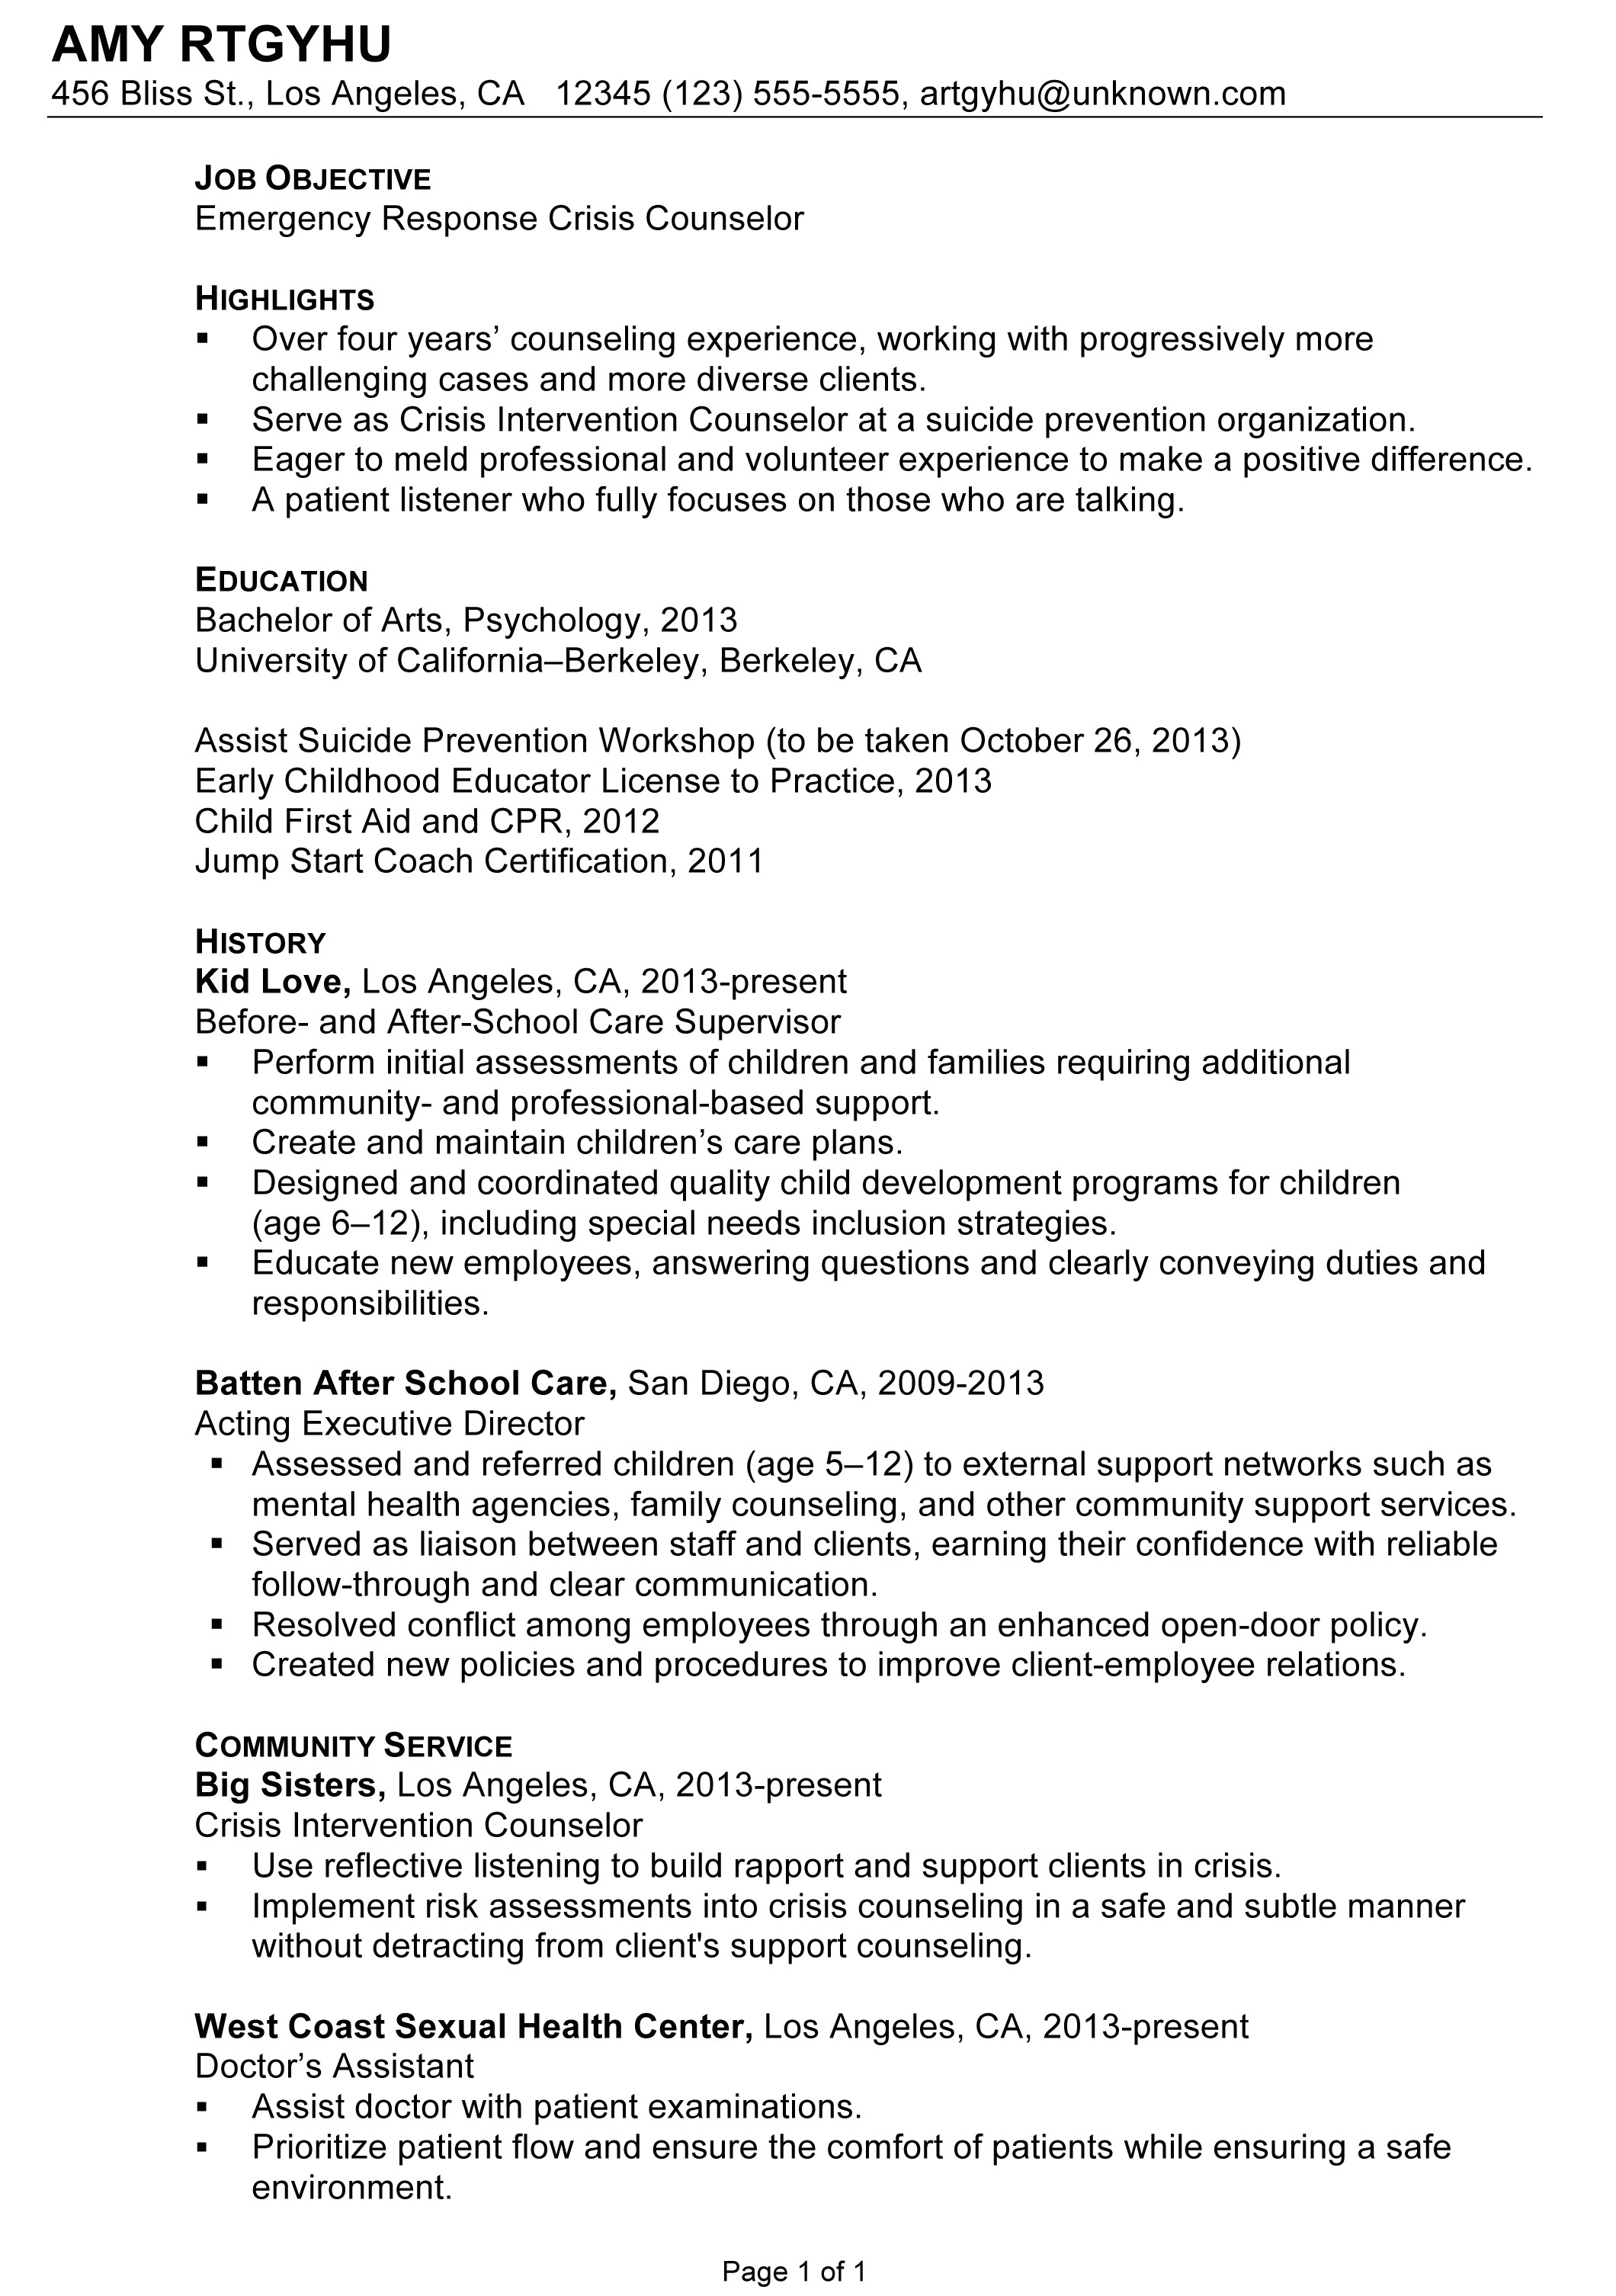 how to make the best resume and cover letter photo